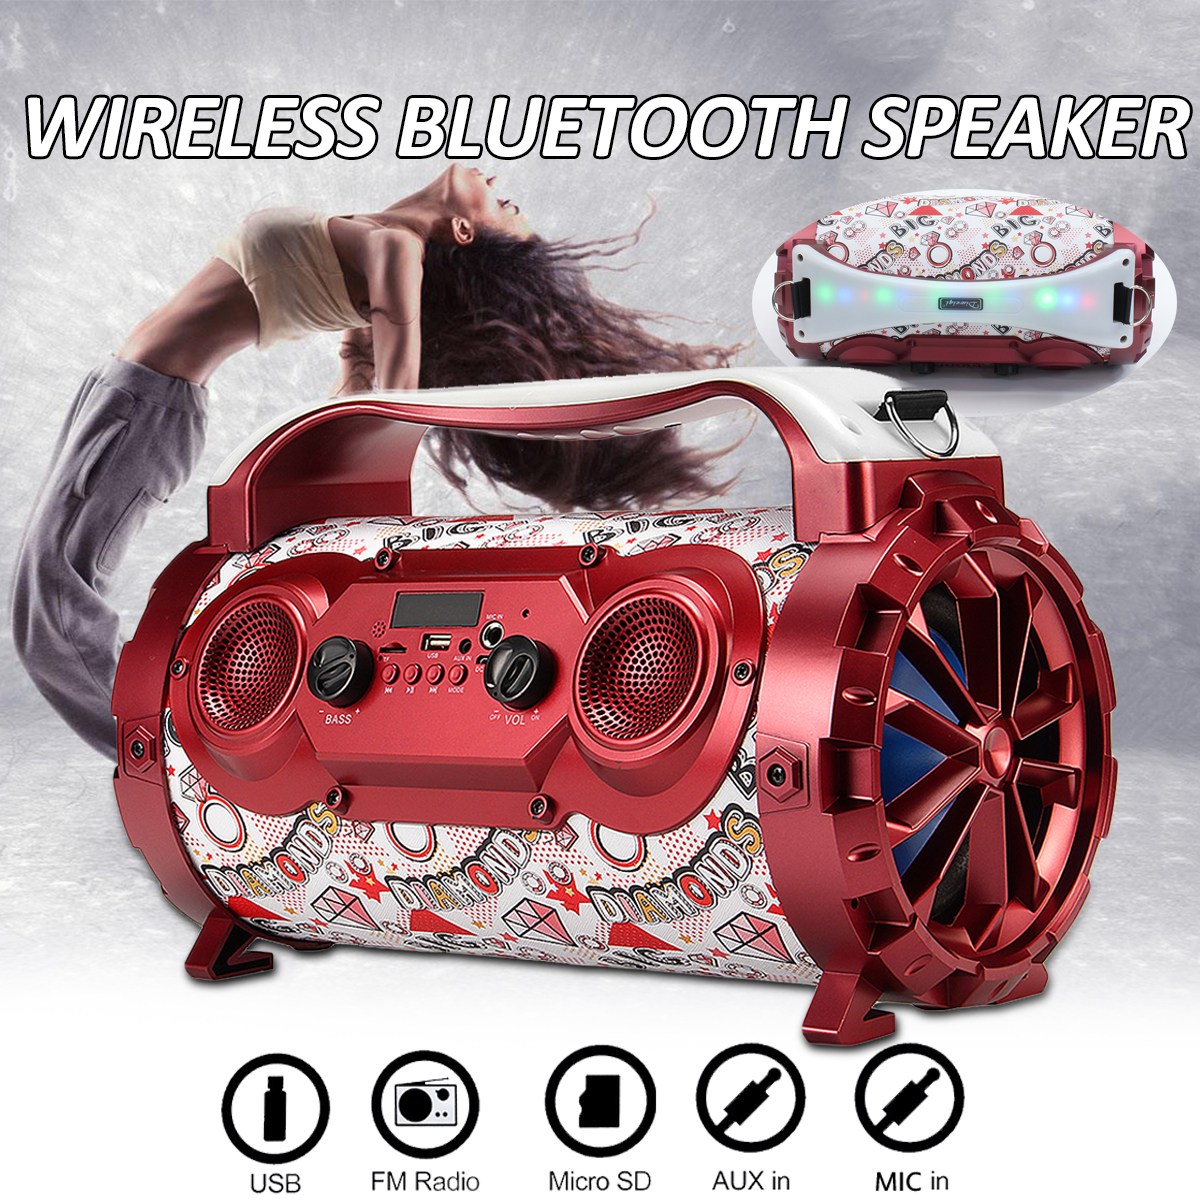 15W Portable Wireless Bluetooth Speakers Outdoor Loudspeaker Sound System Car Music Speakers Radio Player 36x18x22cm exrizu ms 136bt portable wireless bluetooth speakers 15w outdoor led light speaker subwoofer super bass music boombox tf radio